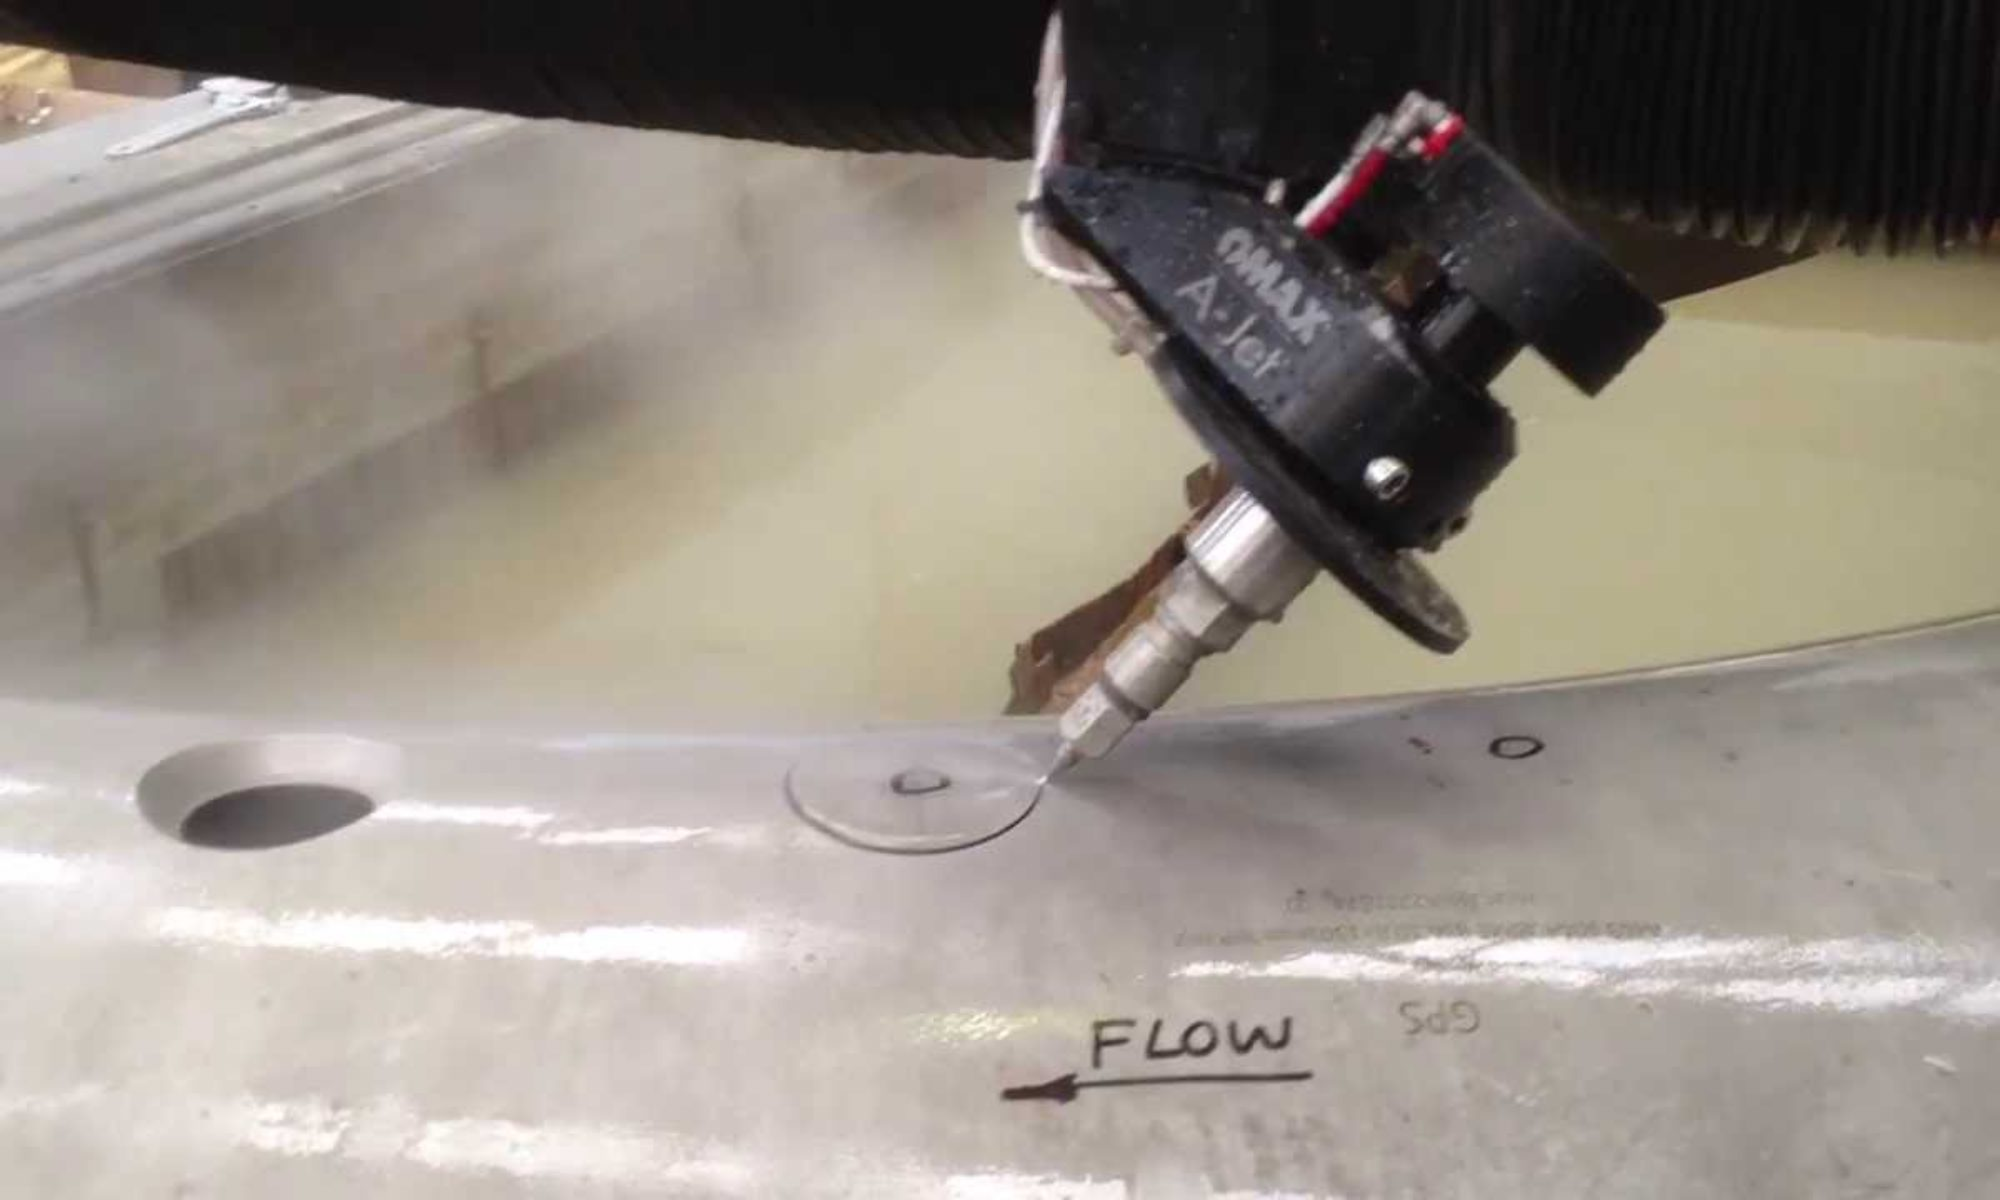 Water Jet Cutting Services from Aqua Cut Technologies